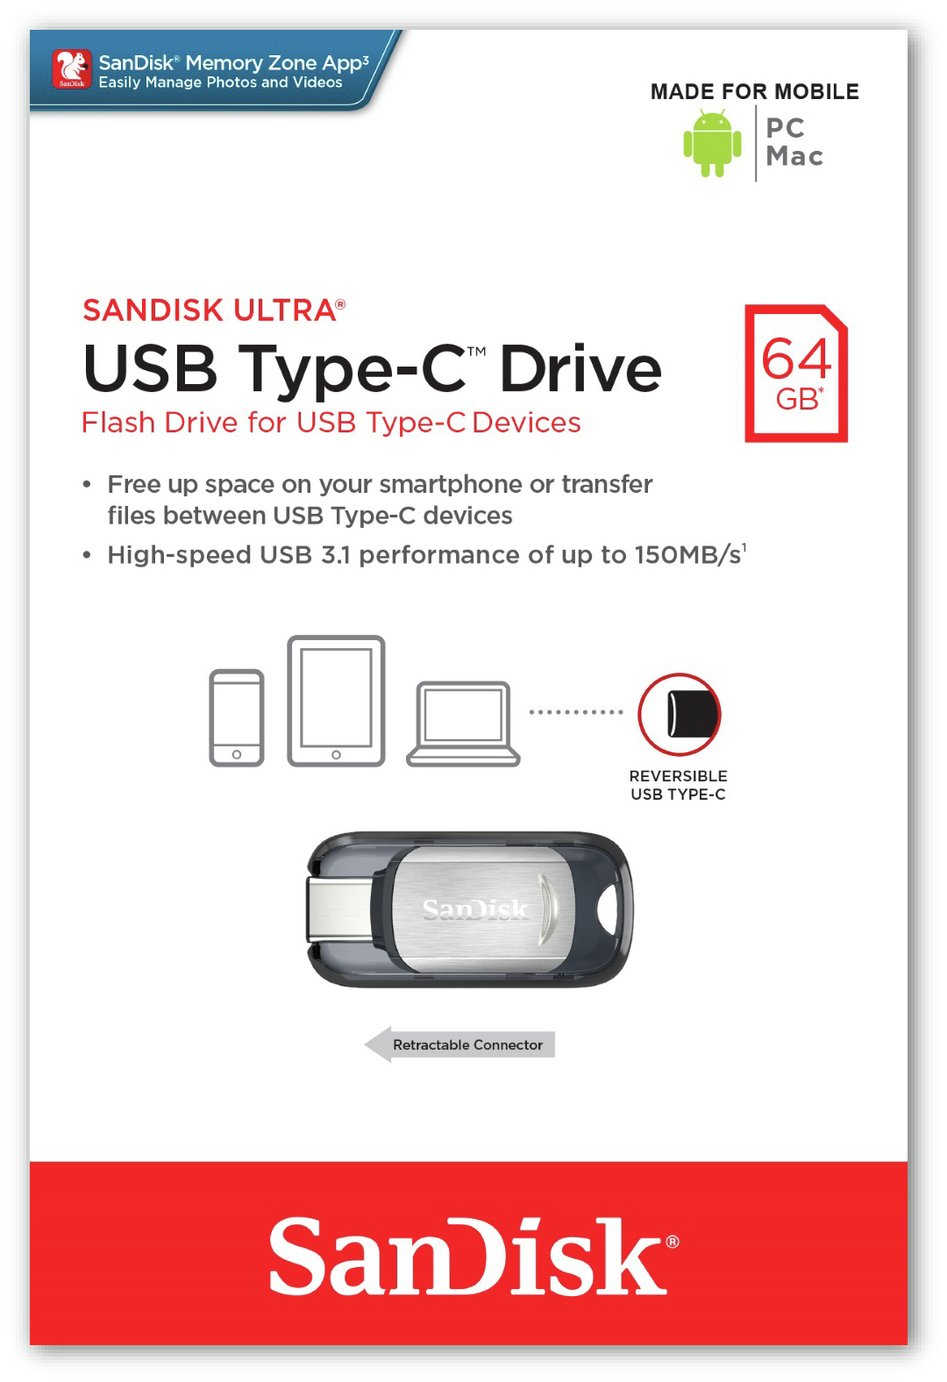 SanDisk Ultra USB 3.0 Flash Drive - 64GB